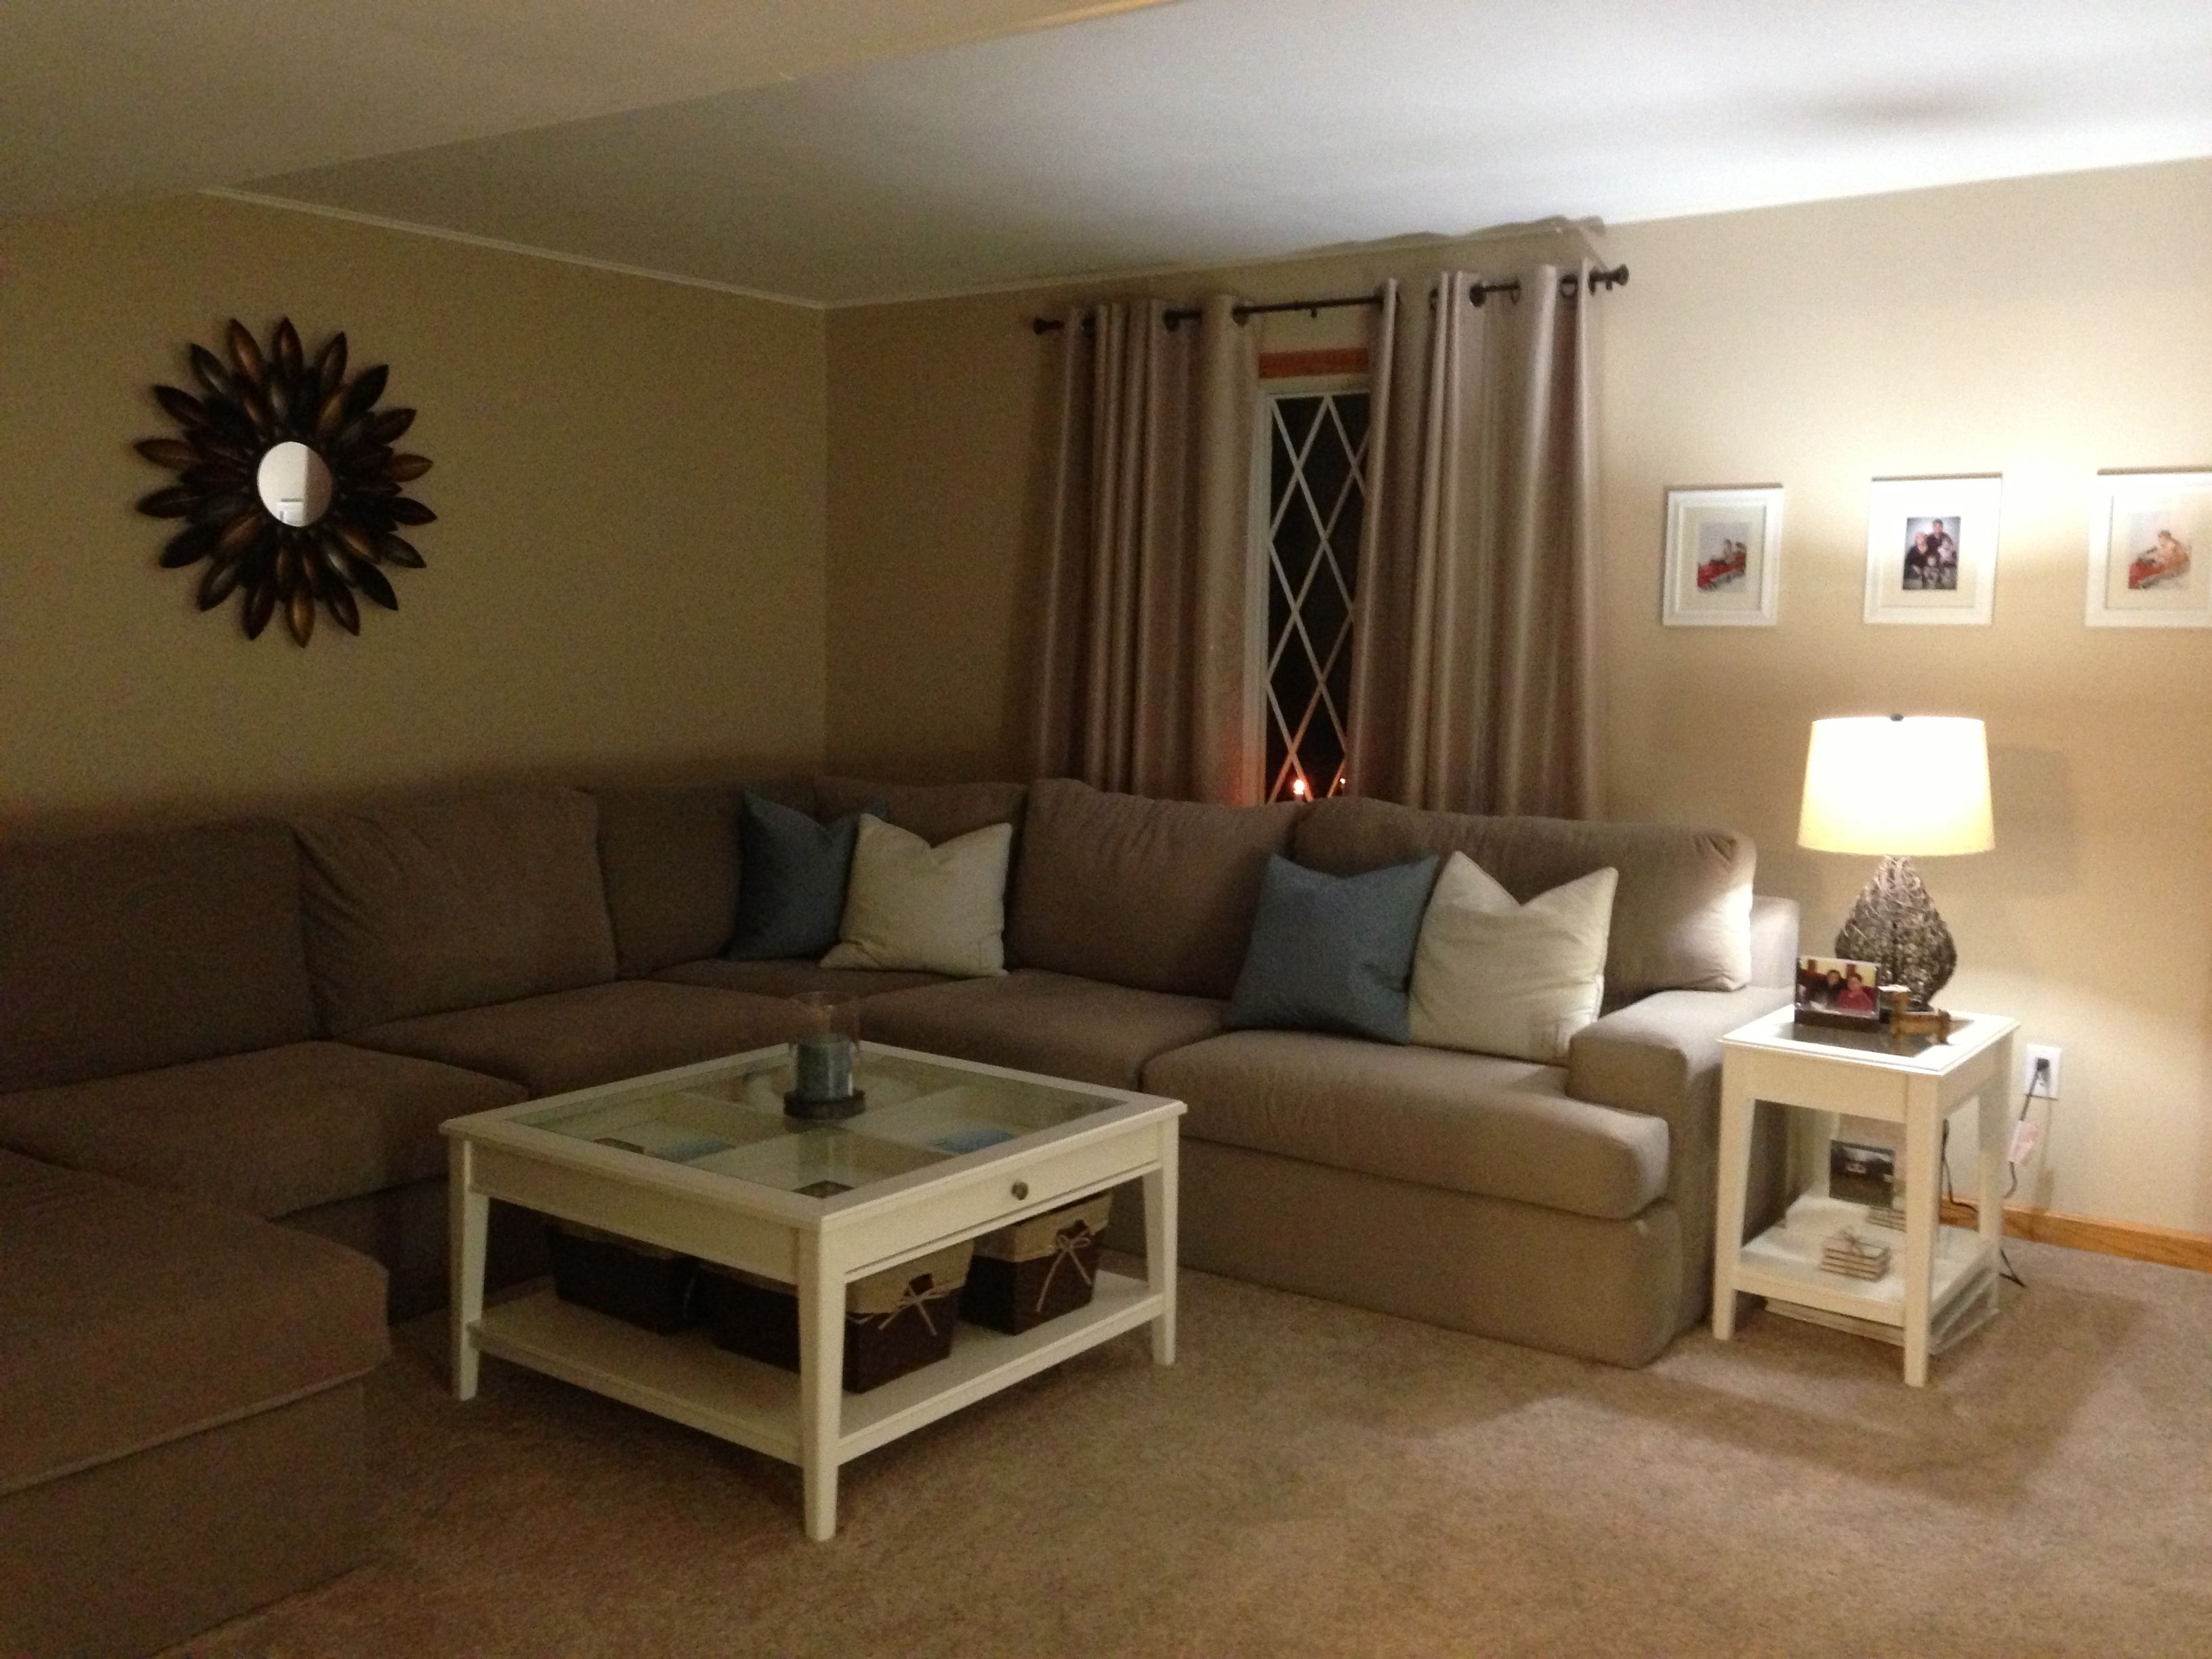 What Color Curtains With Blue Walls Brown Furniture With White Walls Tan Couch And Brown Carpet Blue Curtains